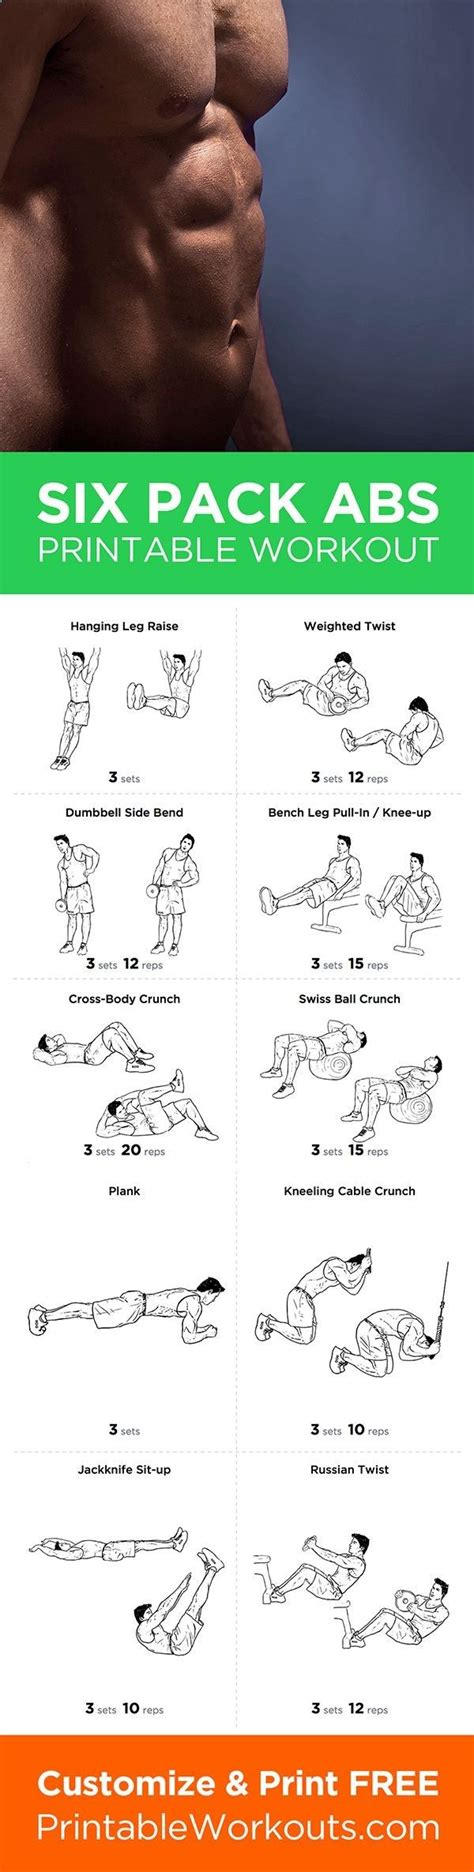 six pack abs gain or weight loss these workout plan is great for fitnes